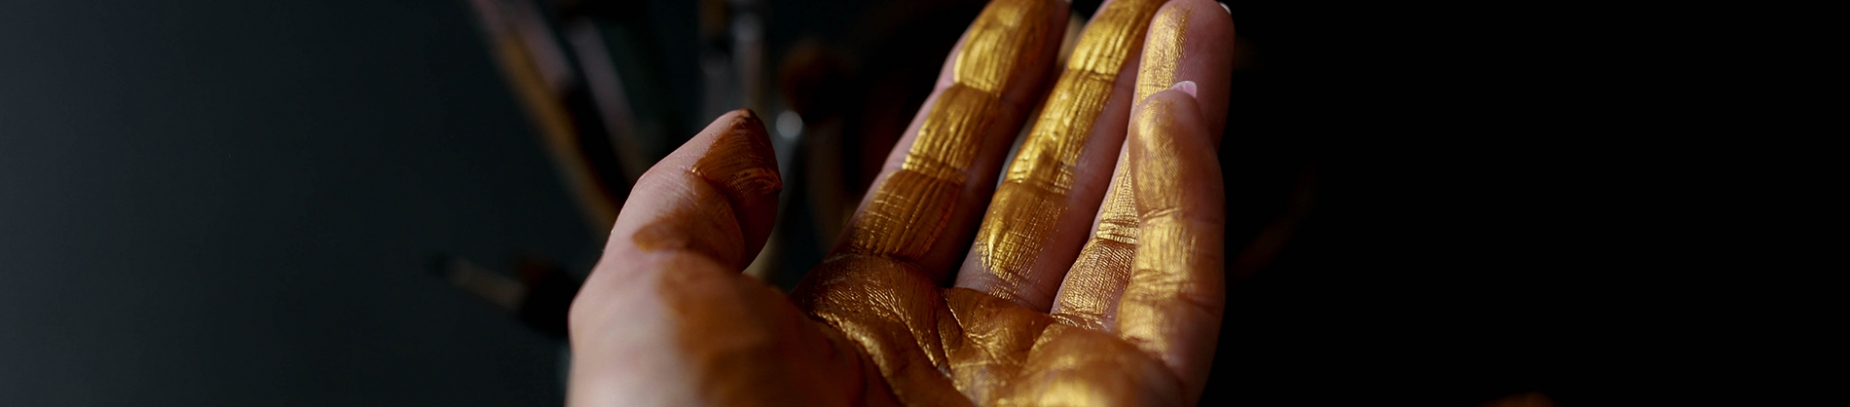 A persons hand with gold paint across the fingers